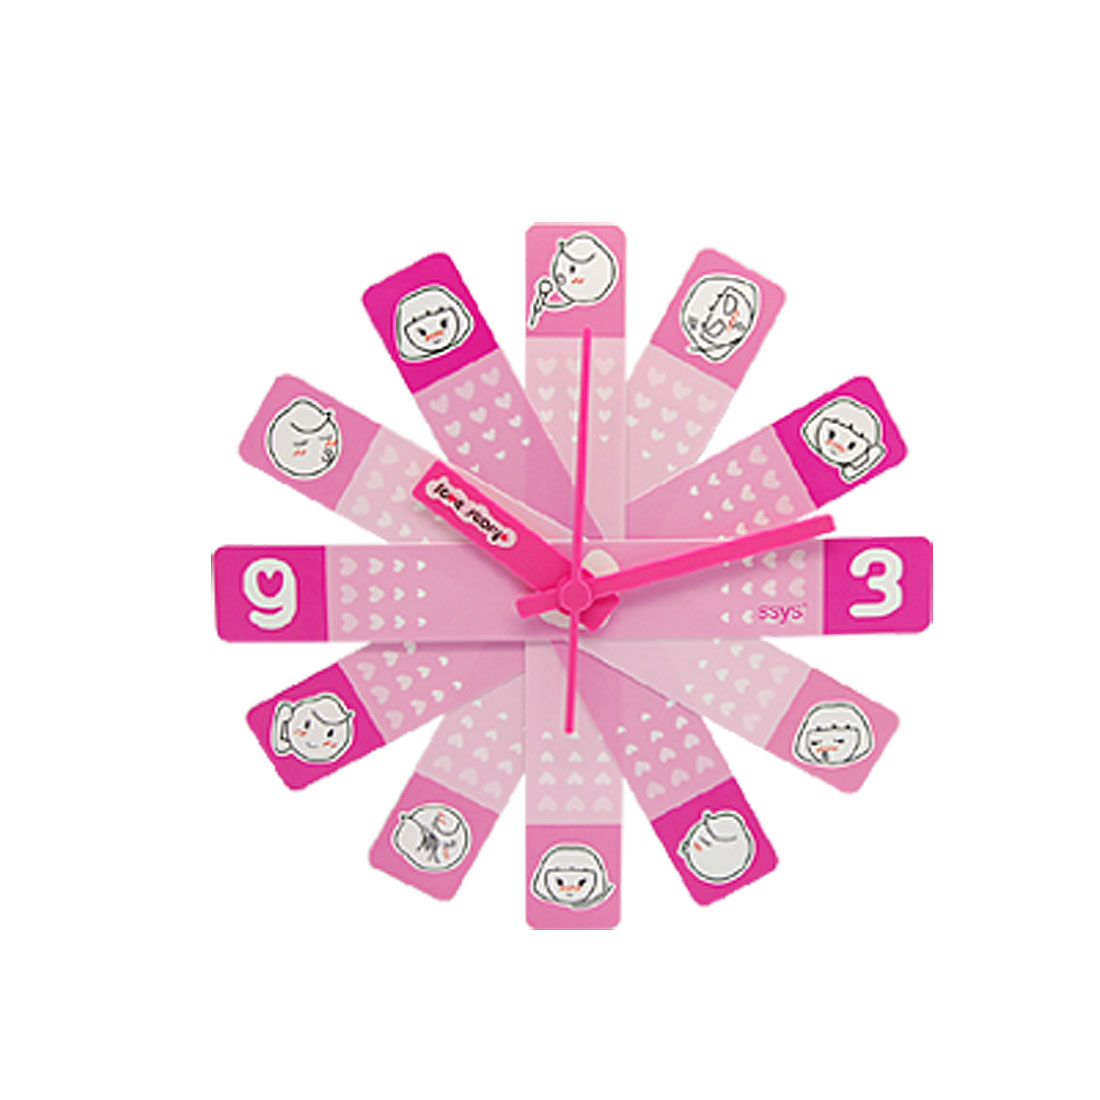 Pink Changeable Style Plastic Wall Mounted Random Clock